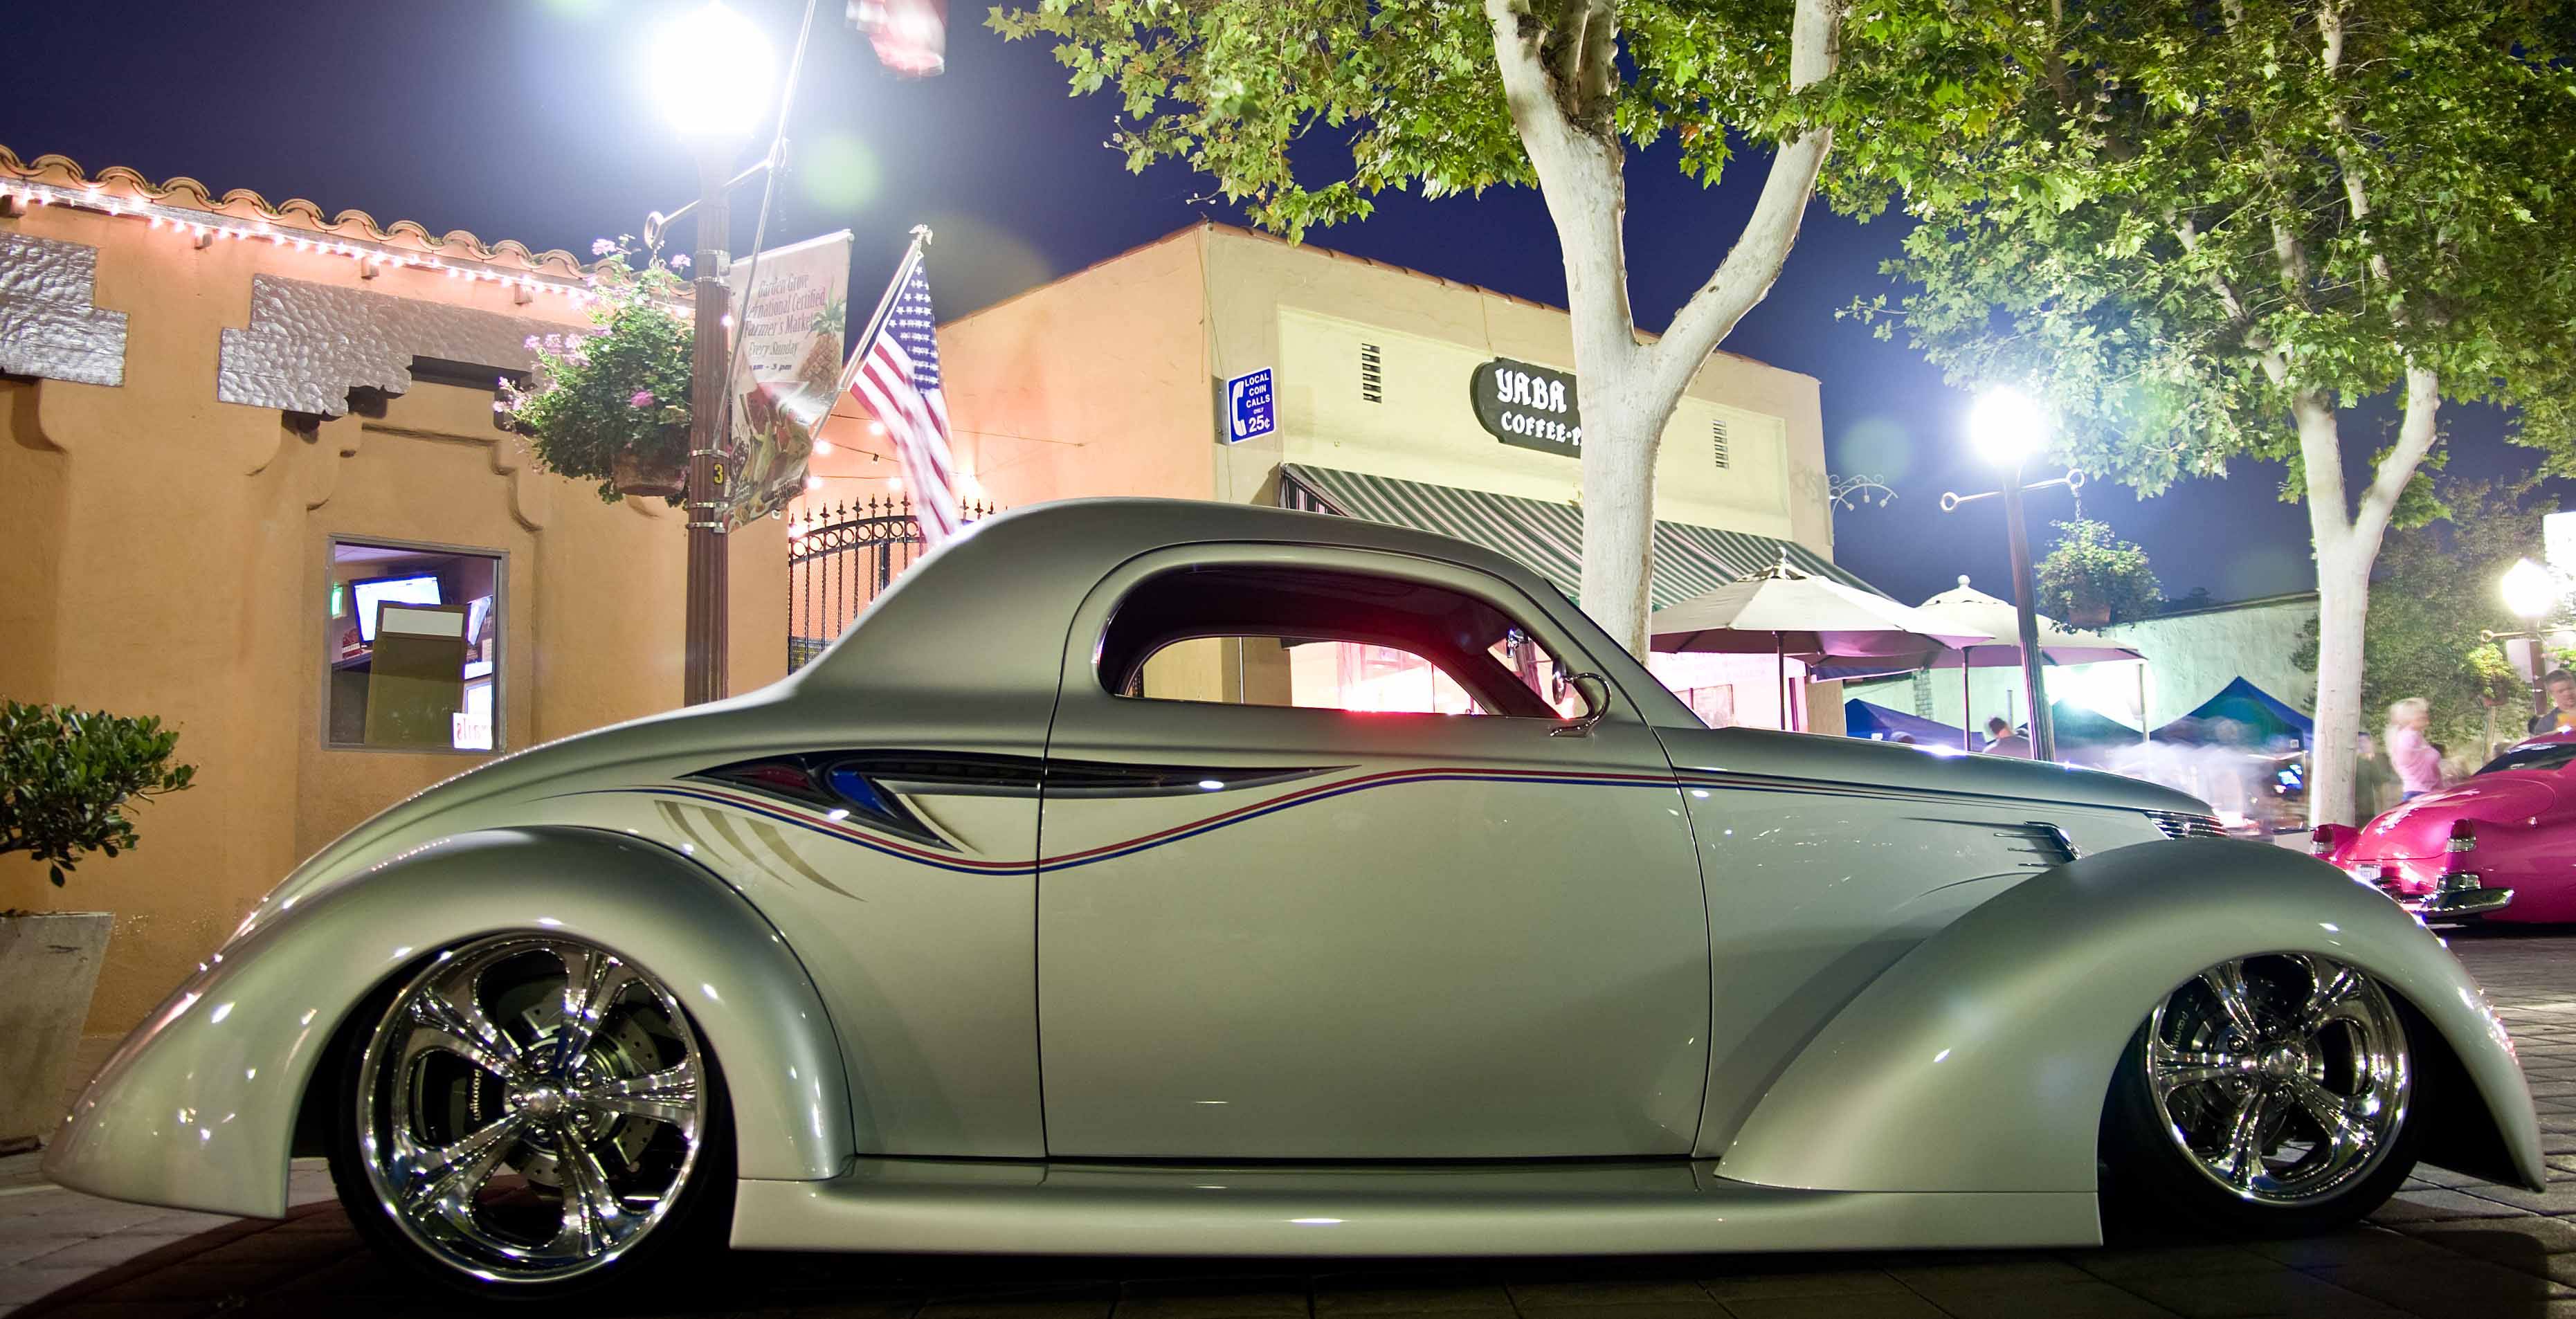 37 Ford Coupe Hot Rod - HD Wallpaper